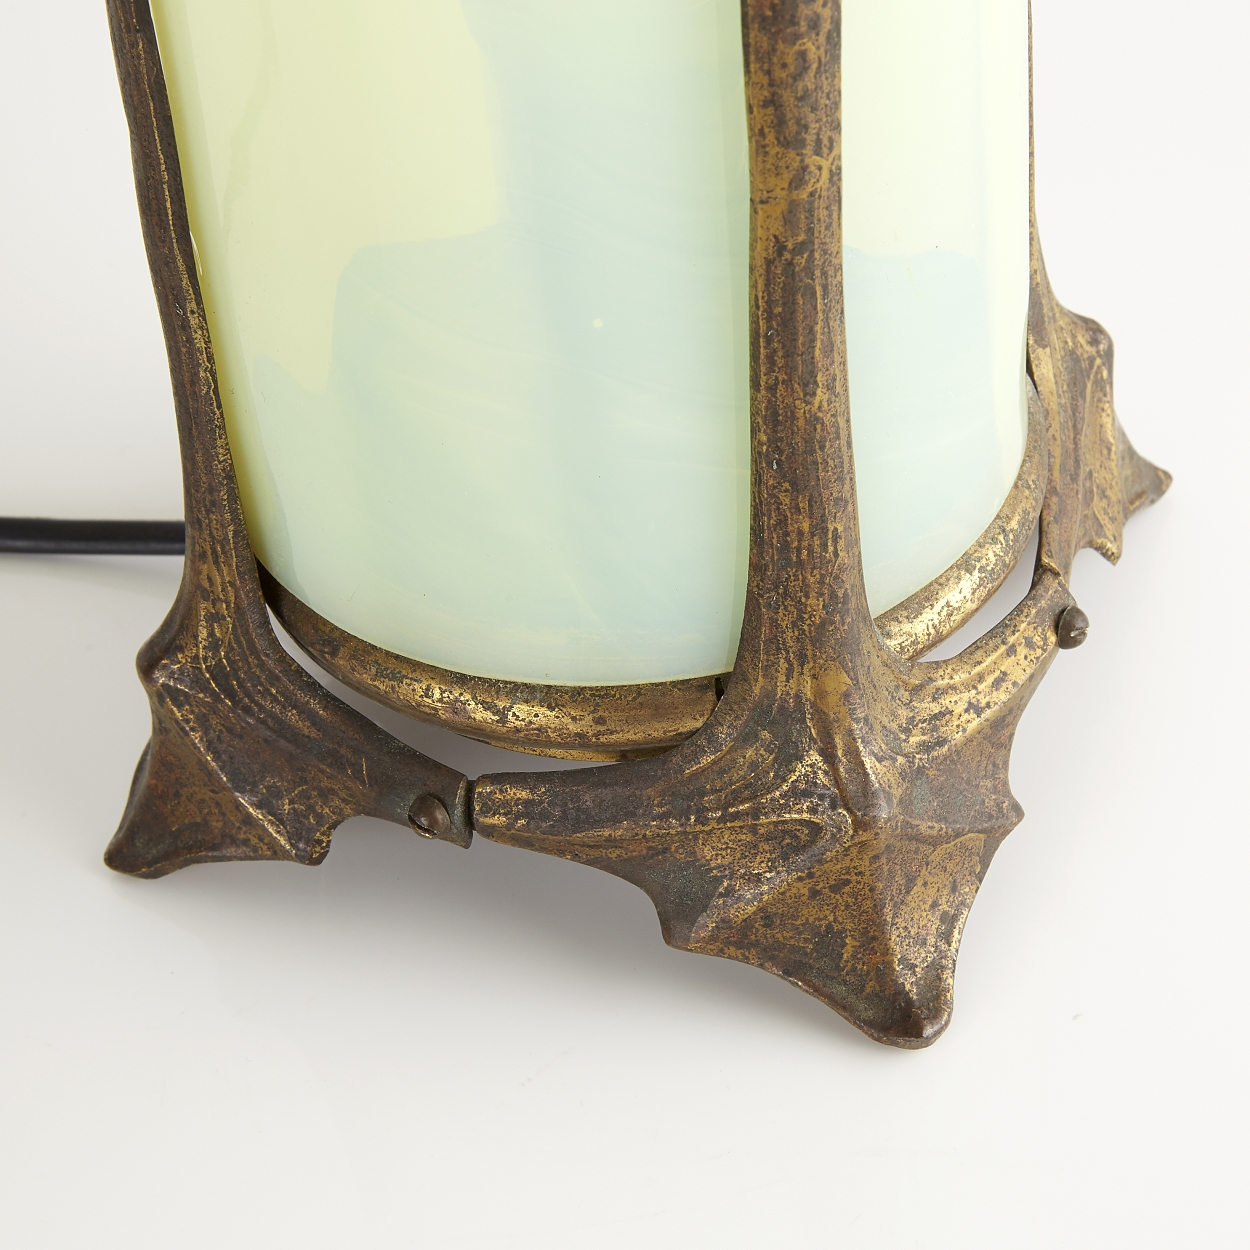 An art noveau table lamp, early 20th century